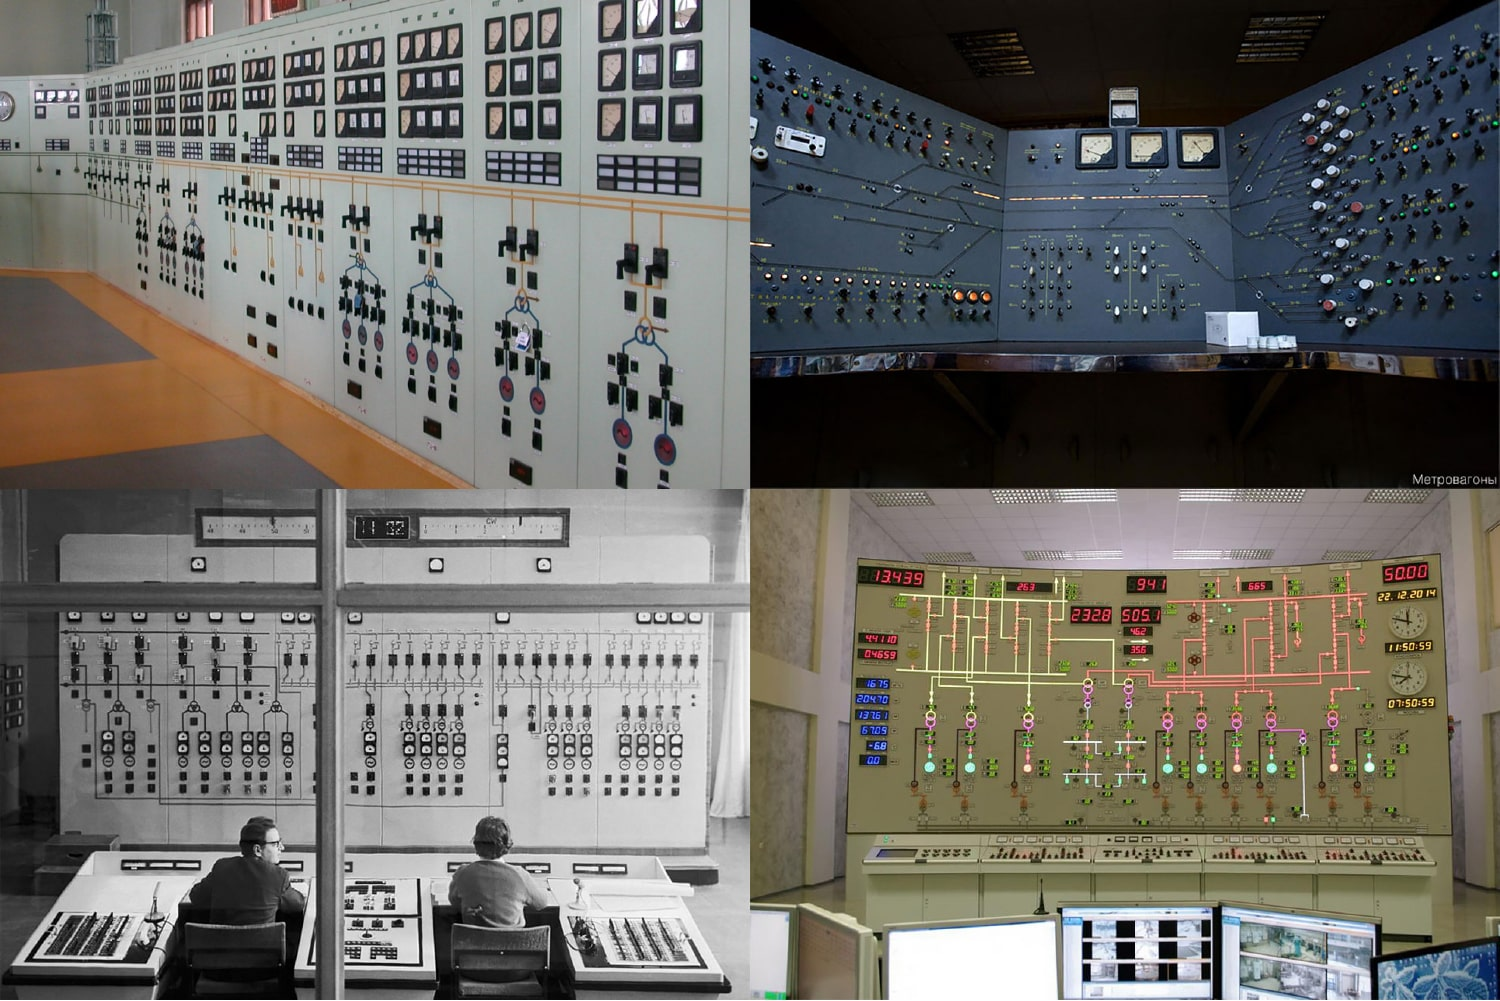 Soviet control panels in action. Source: Present and Correct